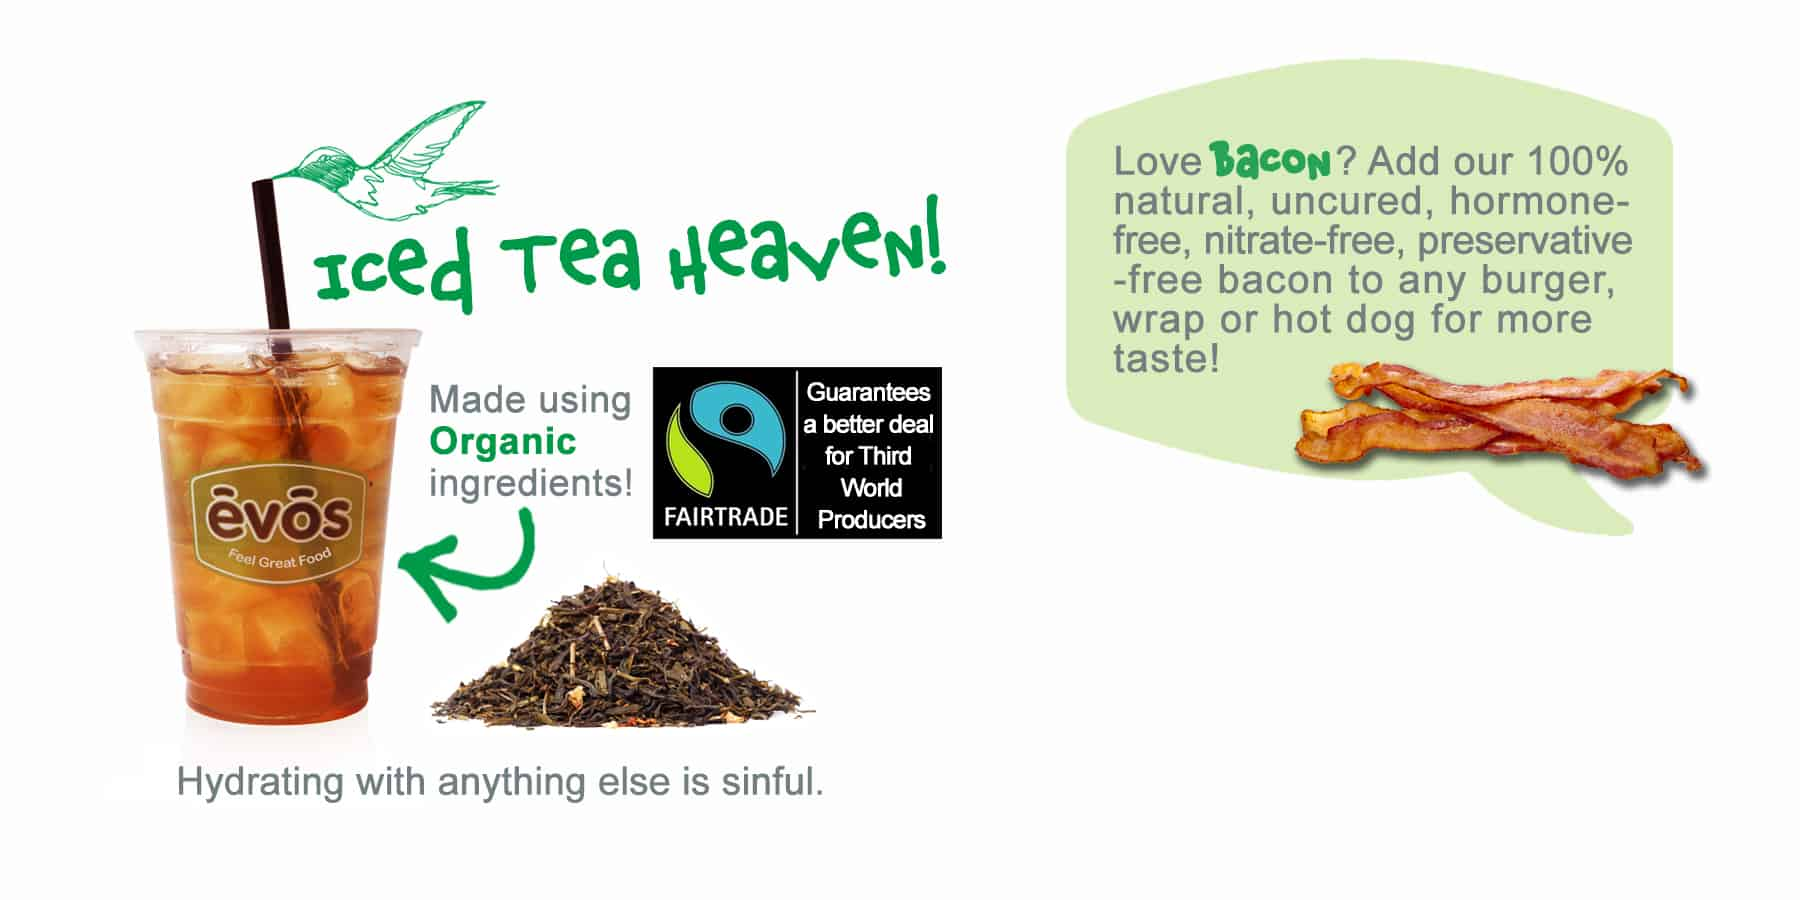 Tea Heaven - Evos Difference | EVOS Feel Great Food